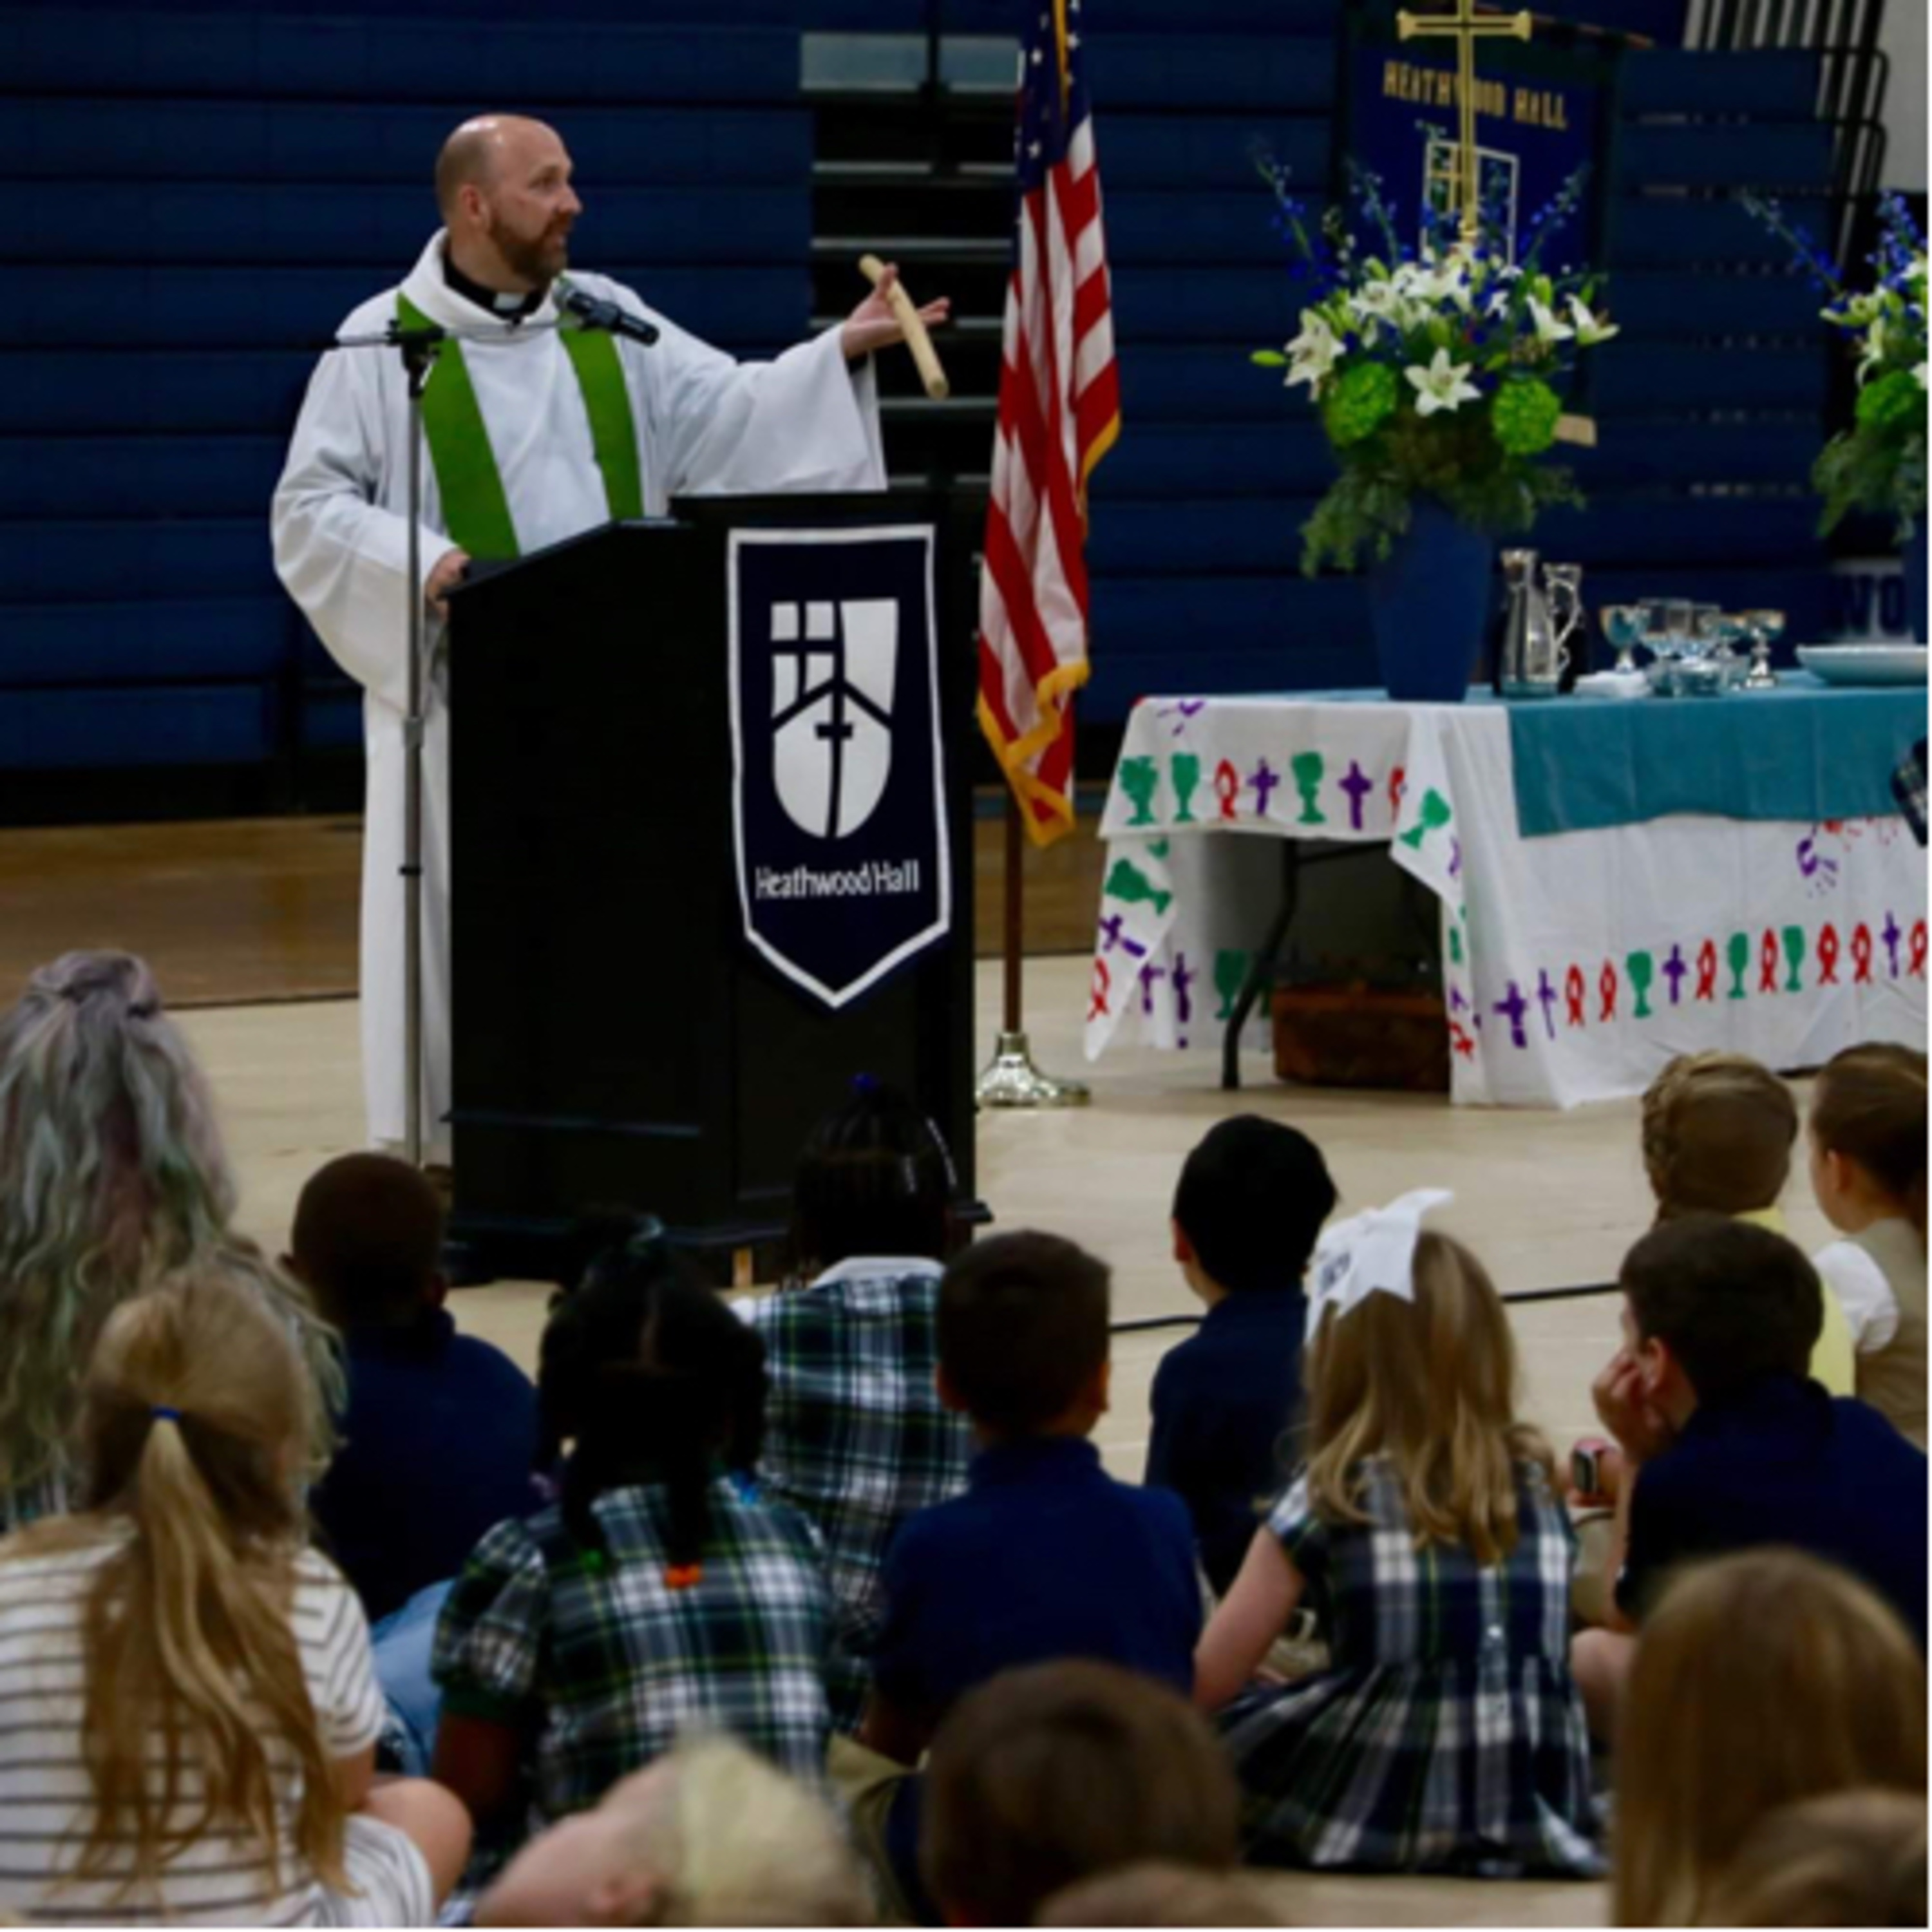 We Are In This Together (a sermon for Heathwood Haol's Convocation)